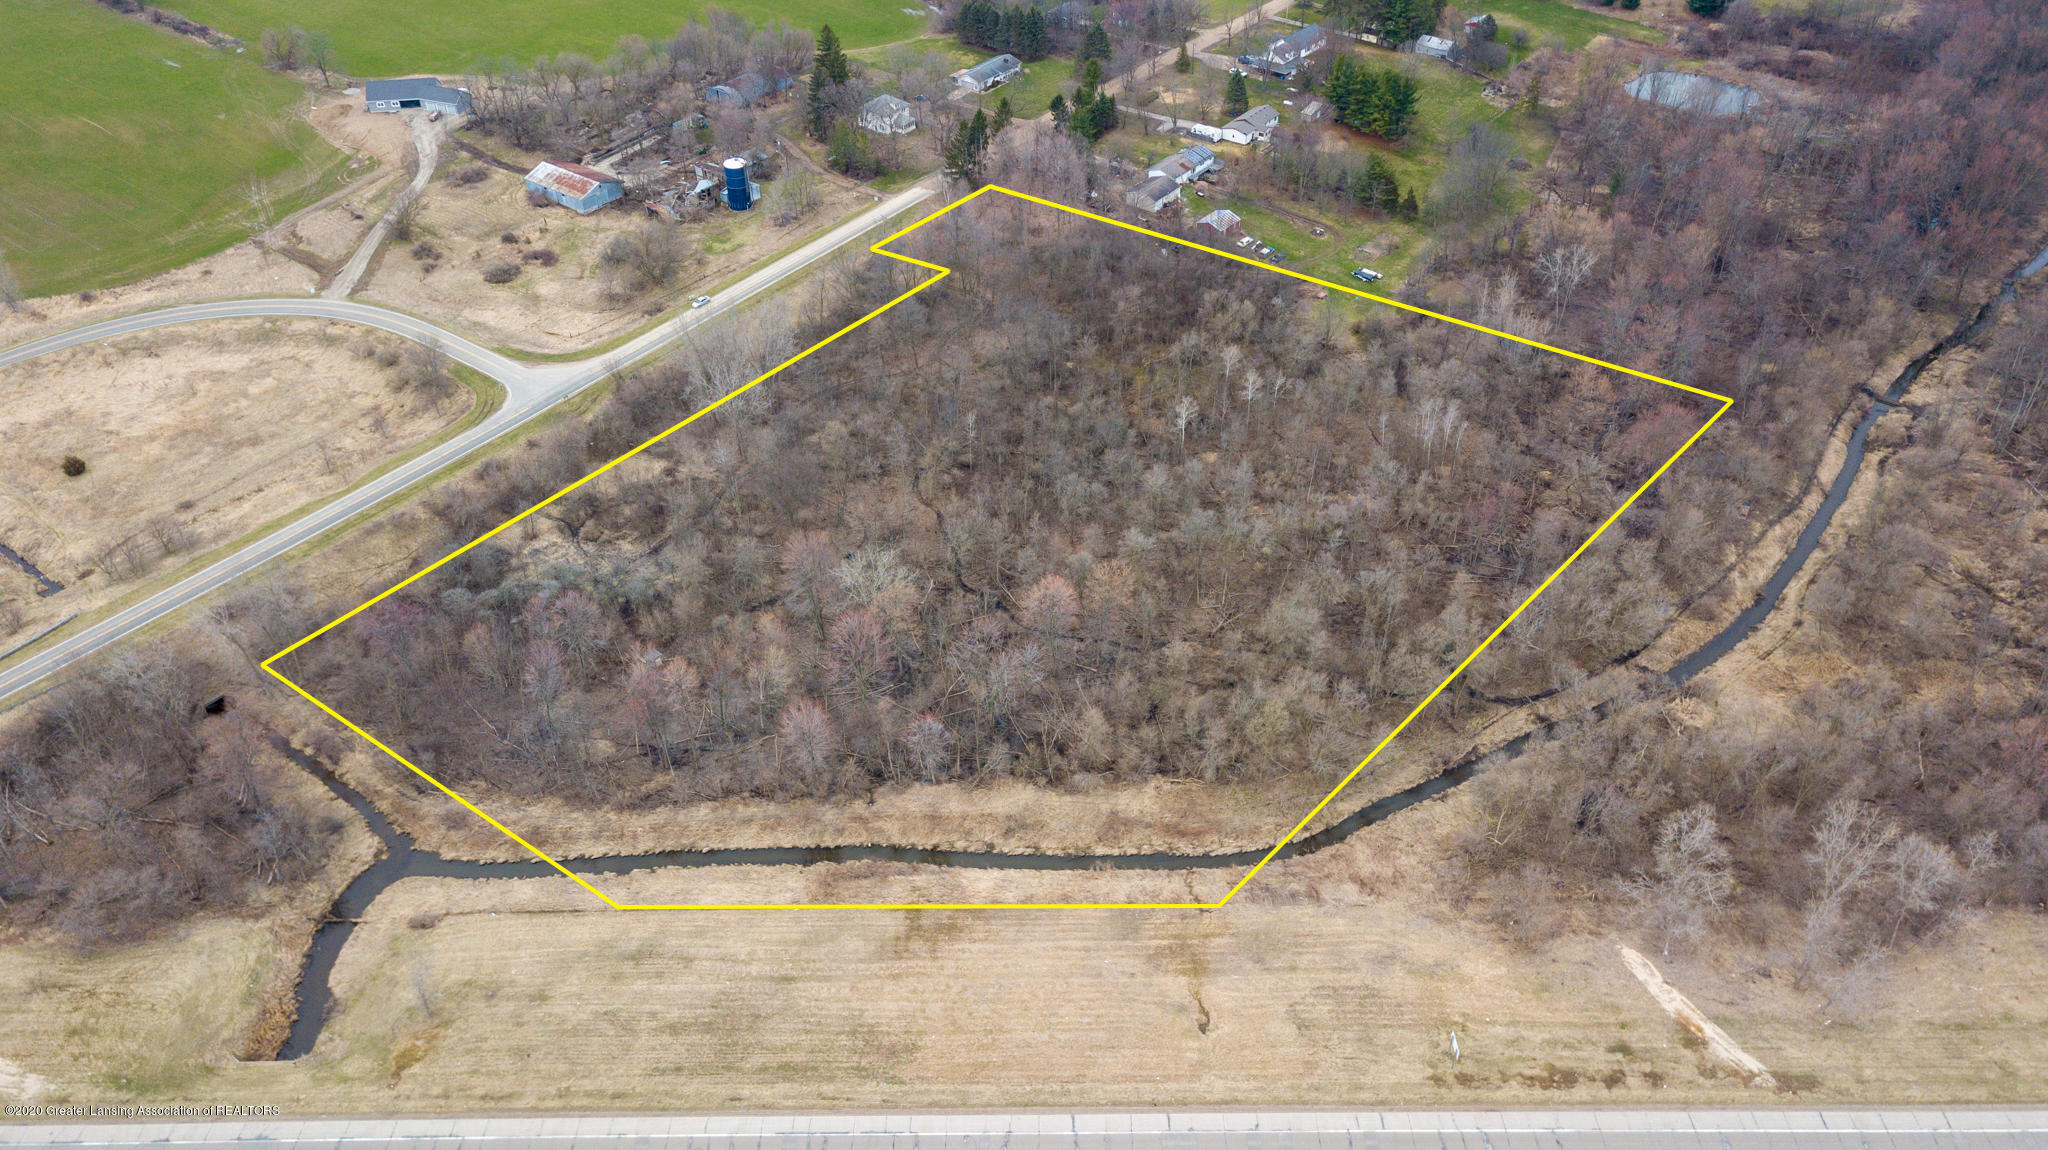 Vl S Lowell Rd - Lowell_Rd_VACANT_BROCK-6 - 10